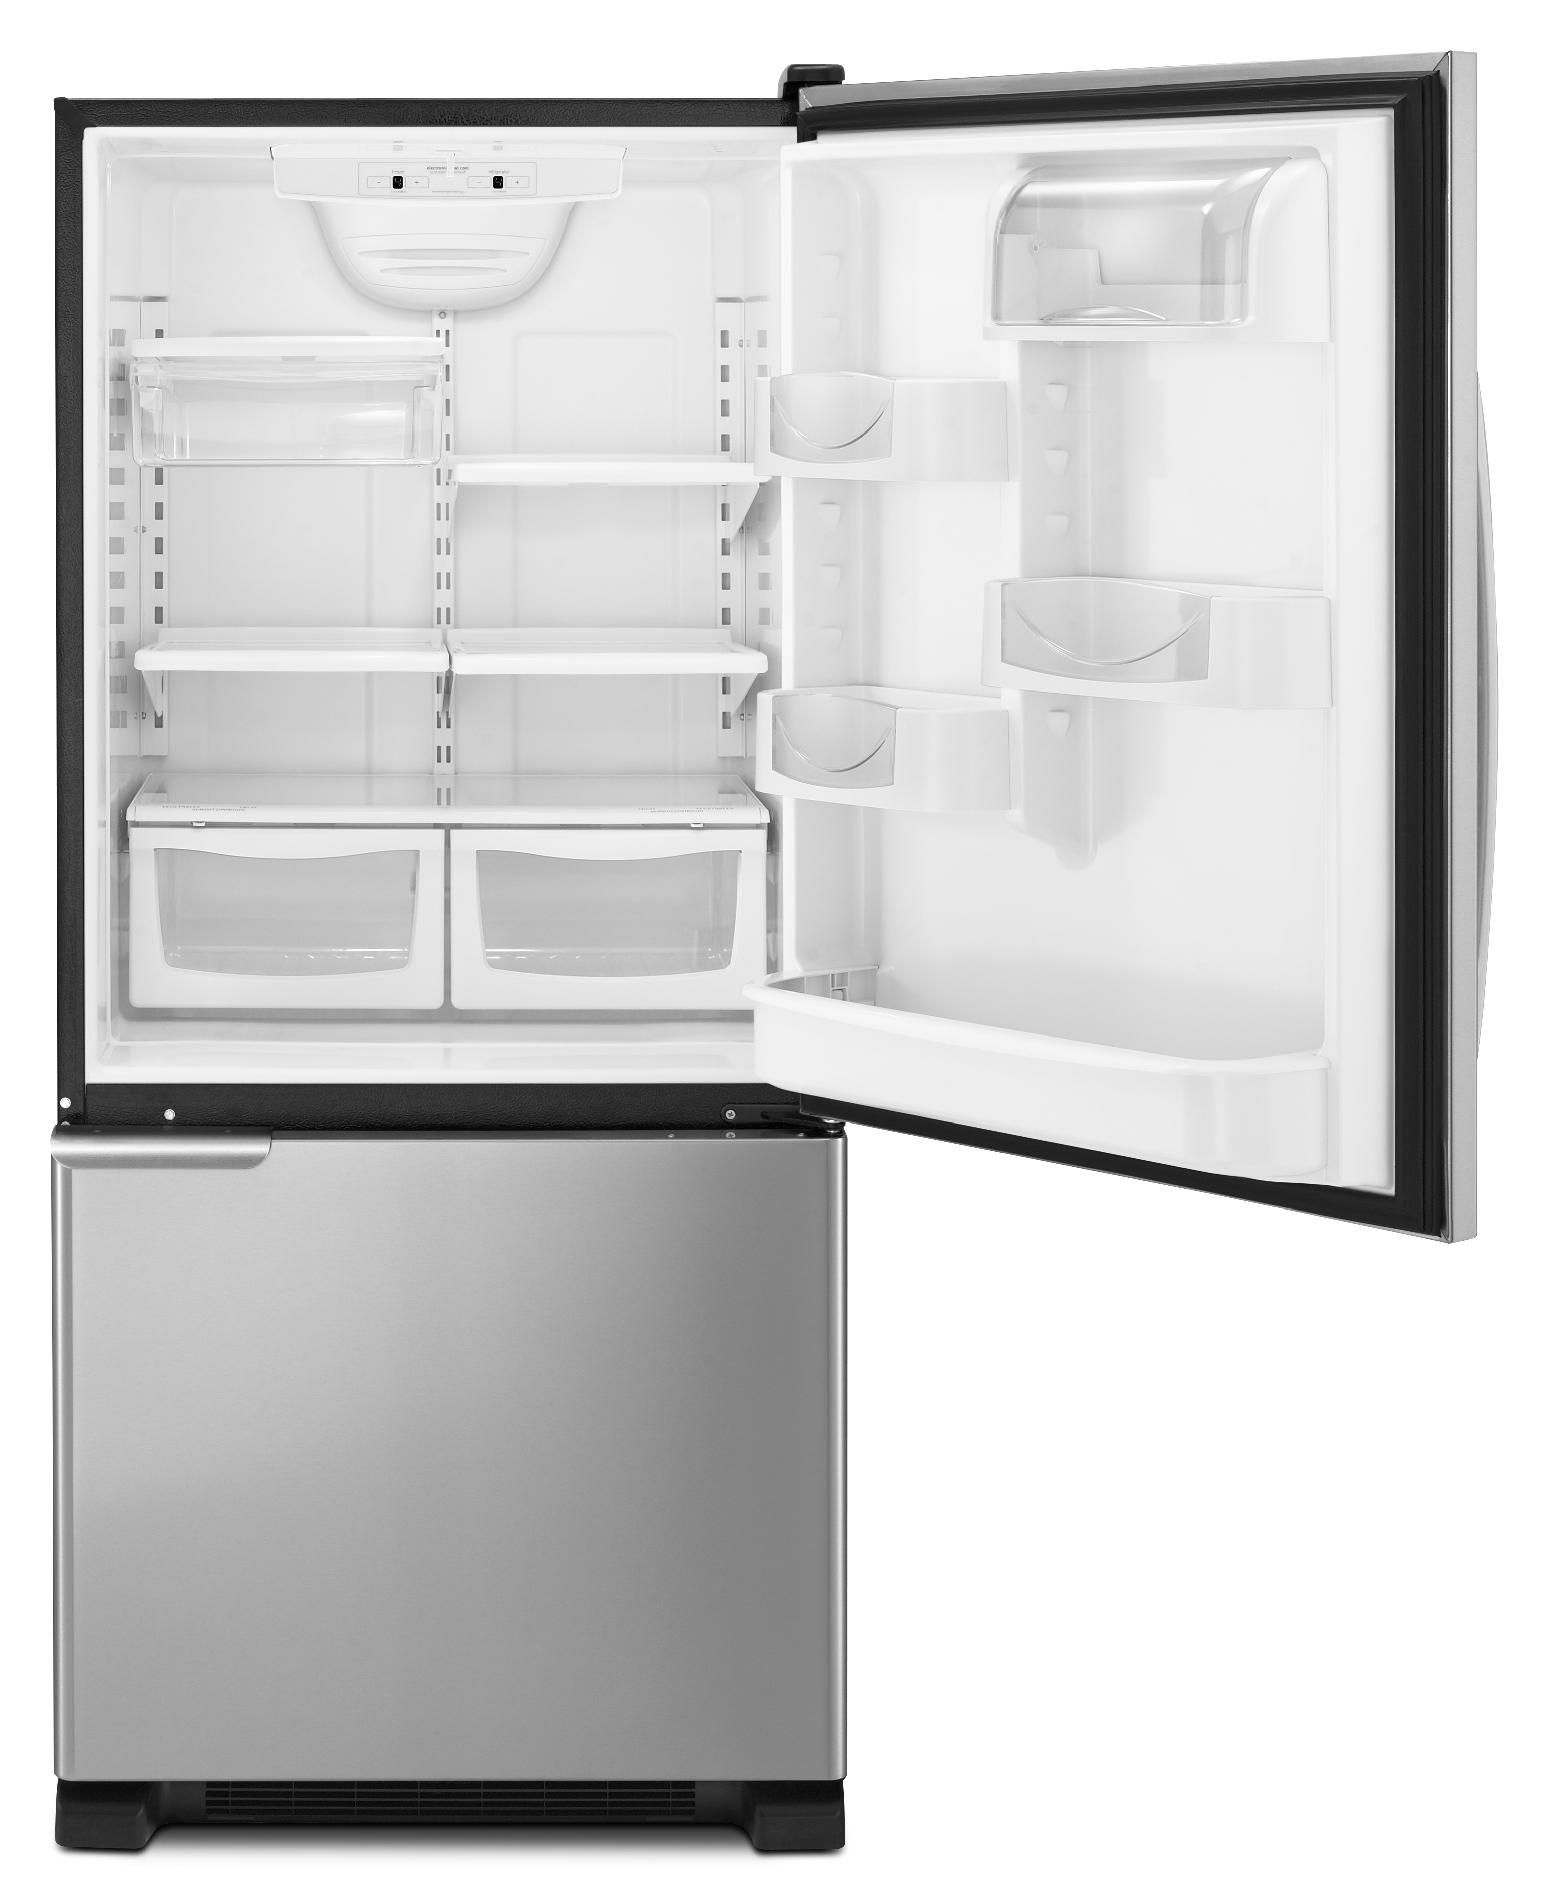 Maytag 19 cu. ft. Bottom-Freezer Refrigerator w/ Spill-Catcher™ Shelves - Stainless Steel